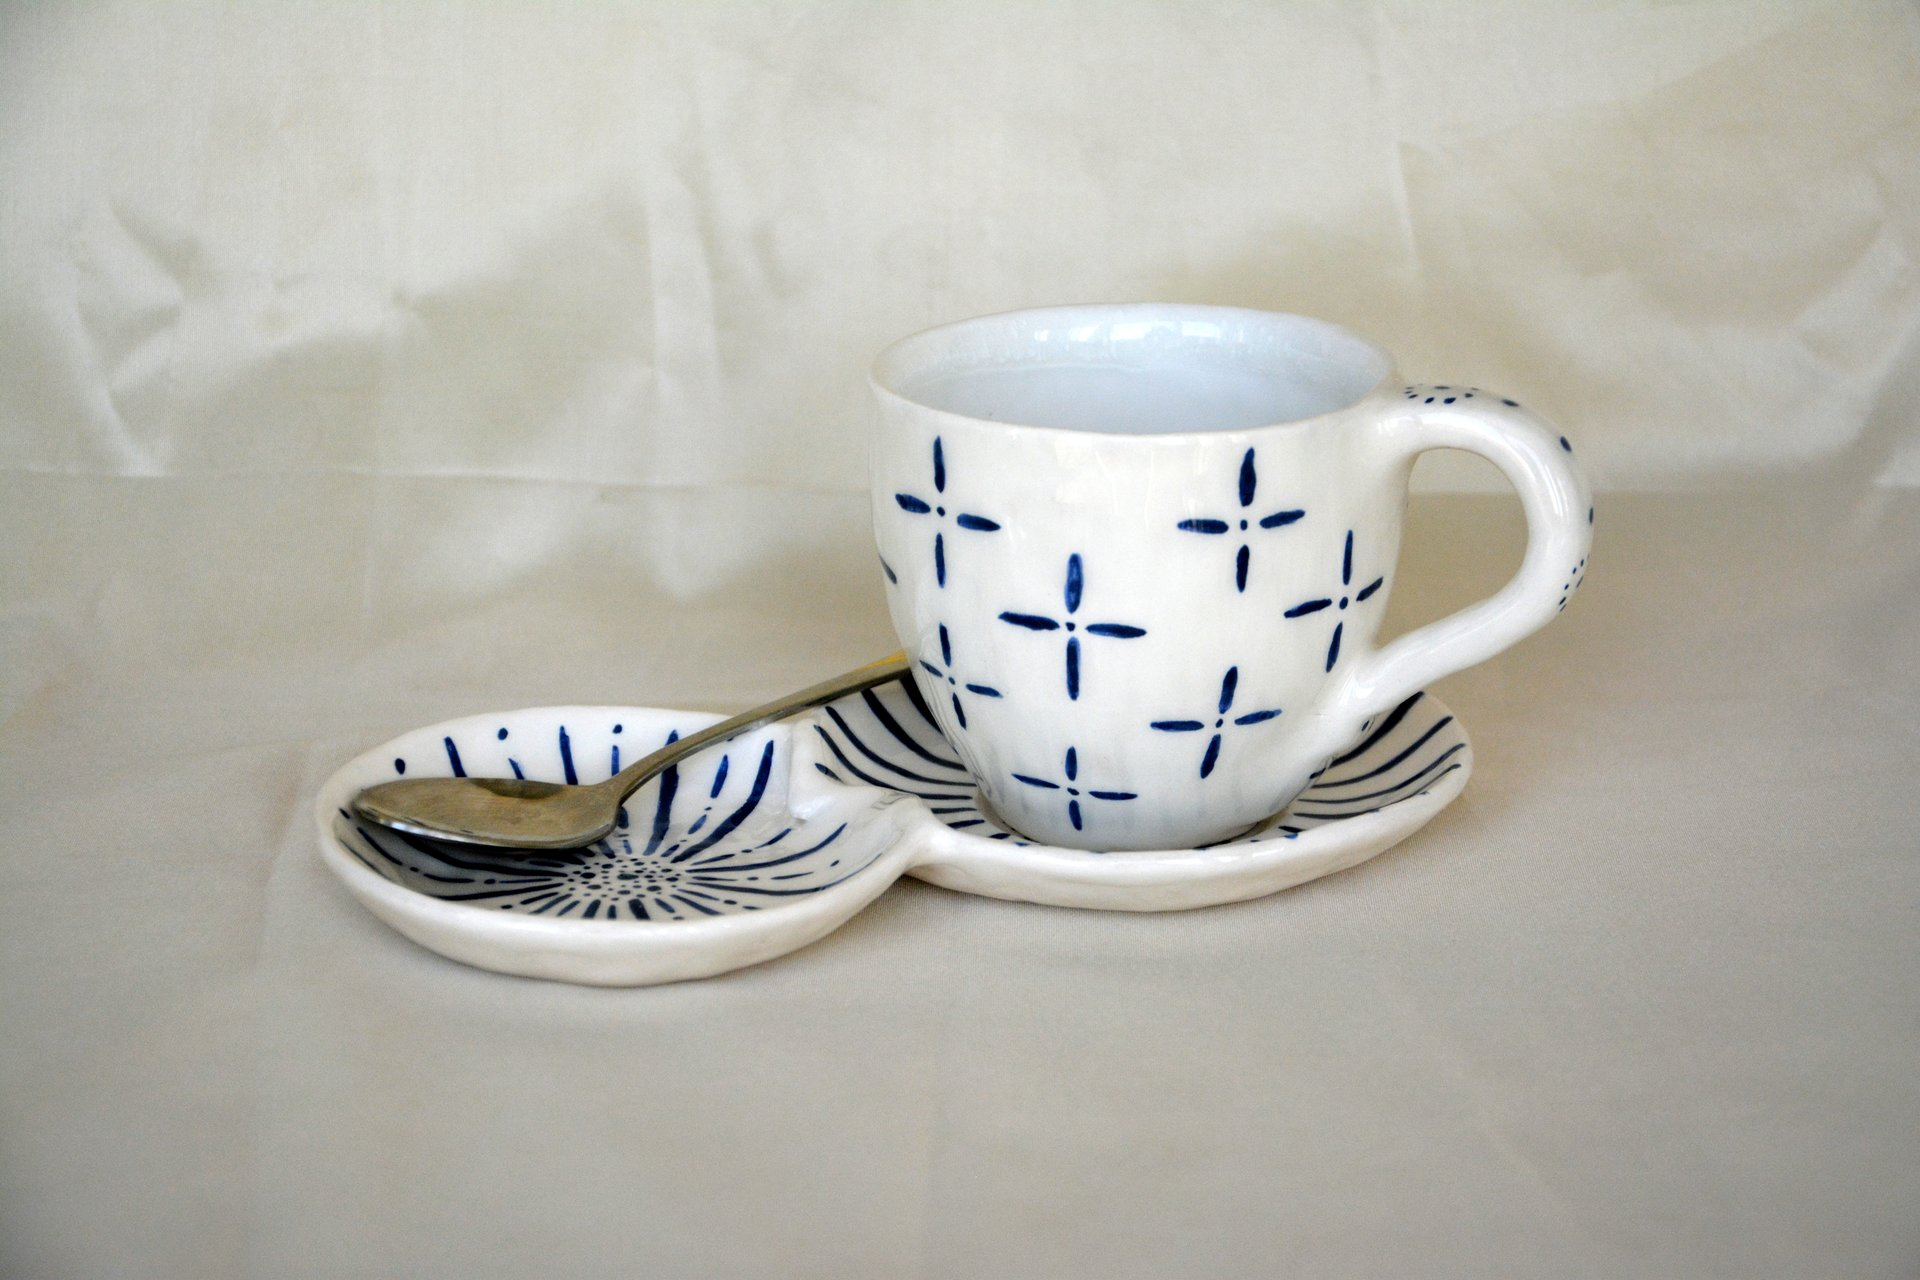 White with blue pattern Crosses - Cups, glasses, mugs, height - 7,5 cm, volume - 250 ml, photo 1 of 4.